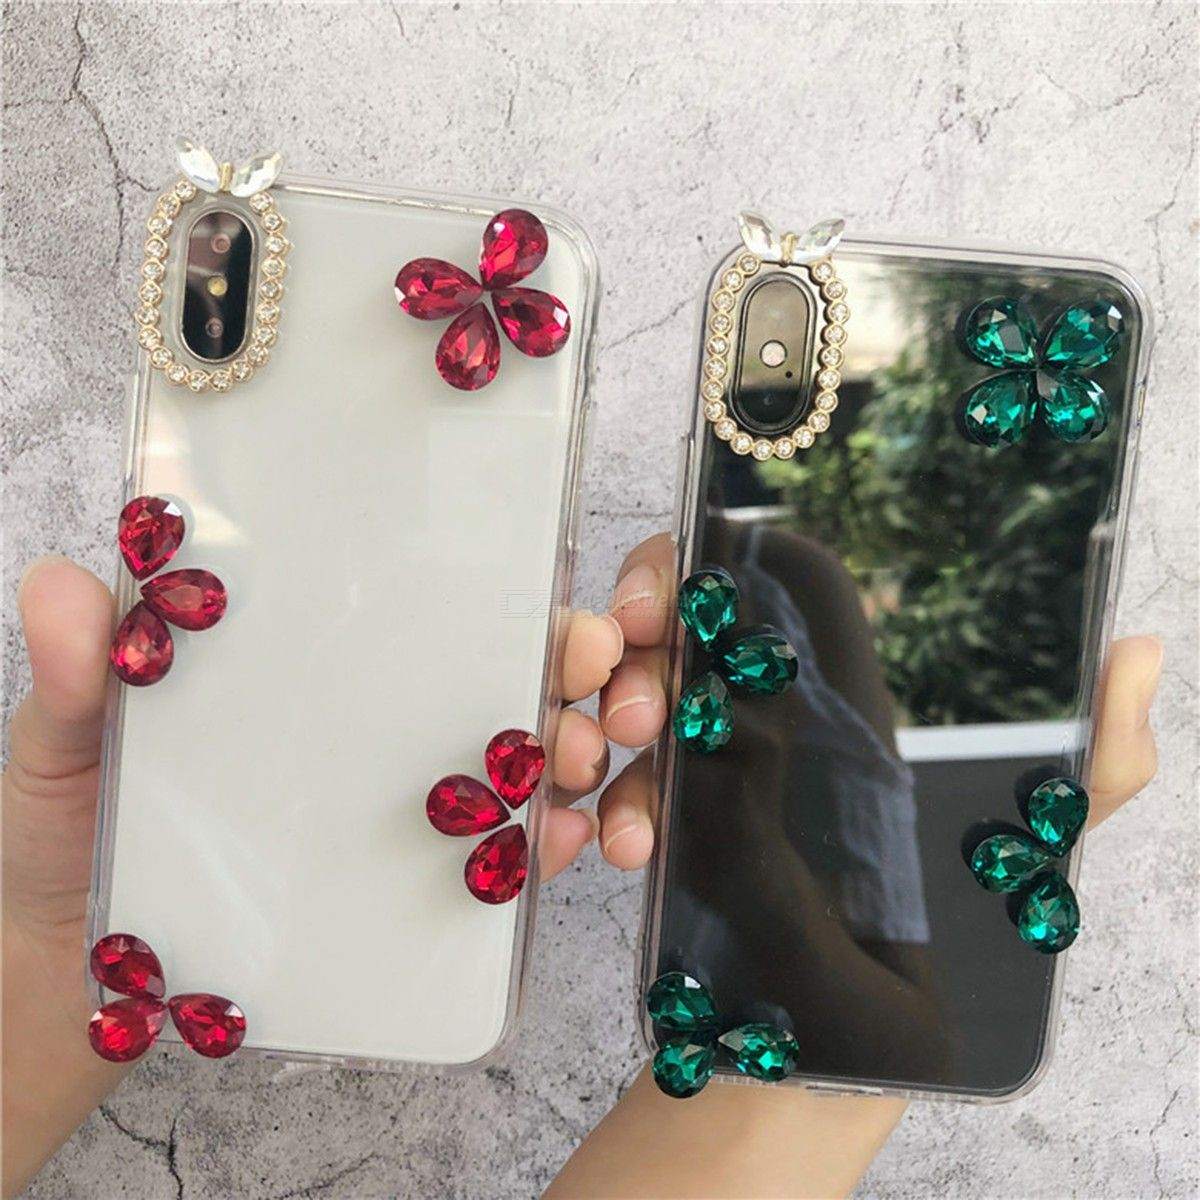 Glitter Cellphone Case Luxury Rhinestone Phone Cover For IPHONE